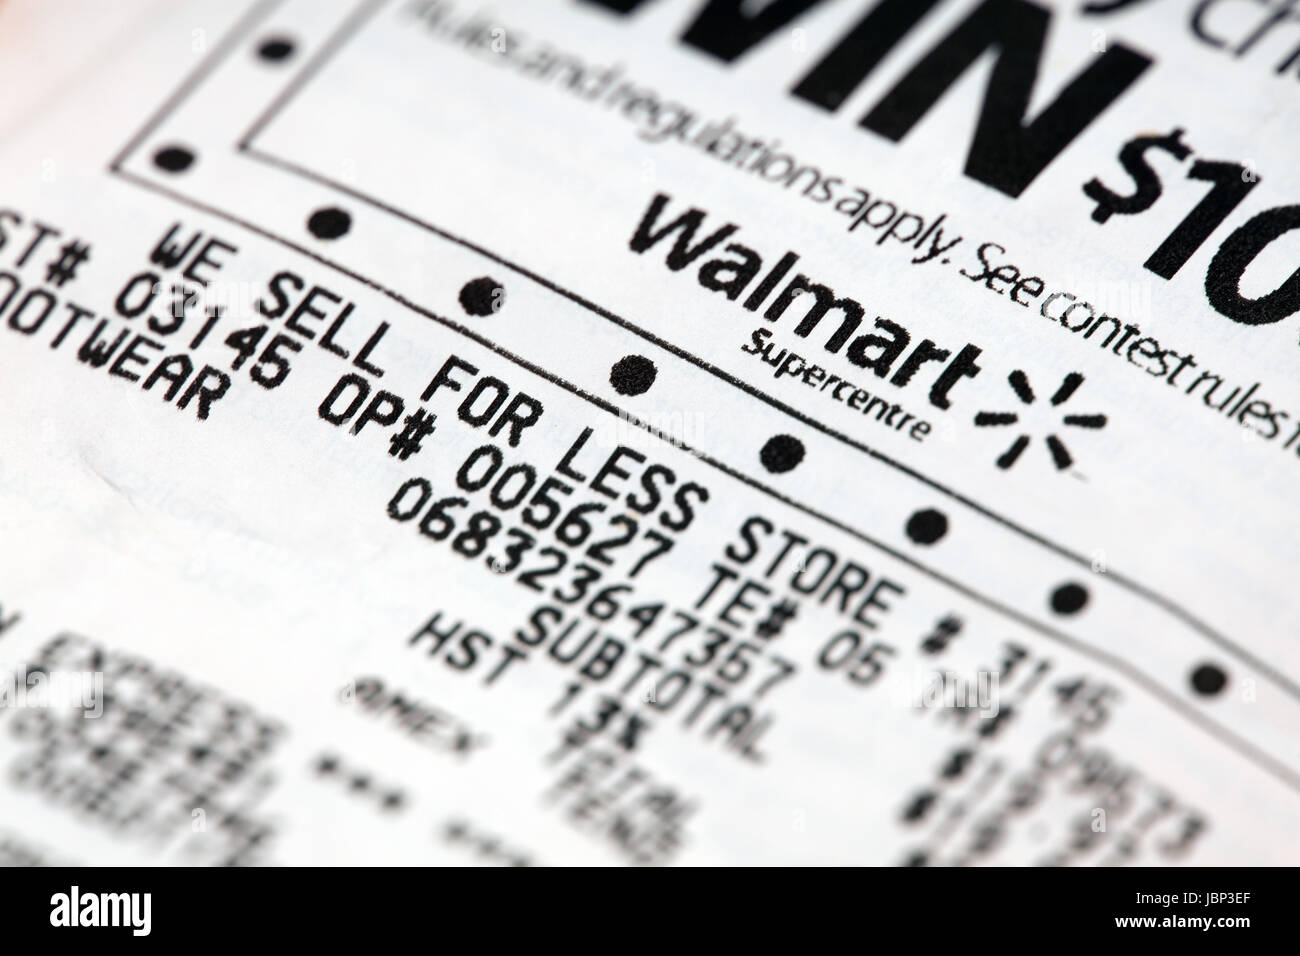 walmart superstore receipt close up featurin we sell for less stock